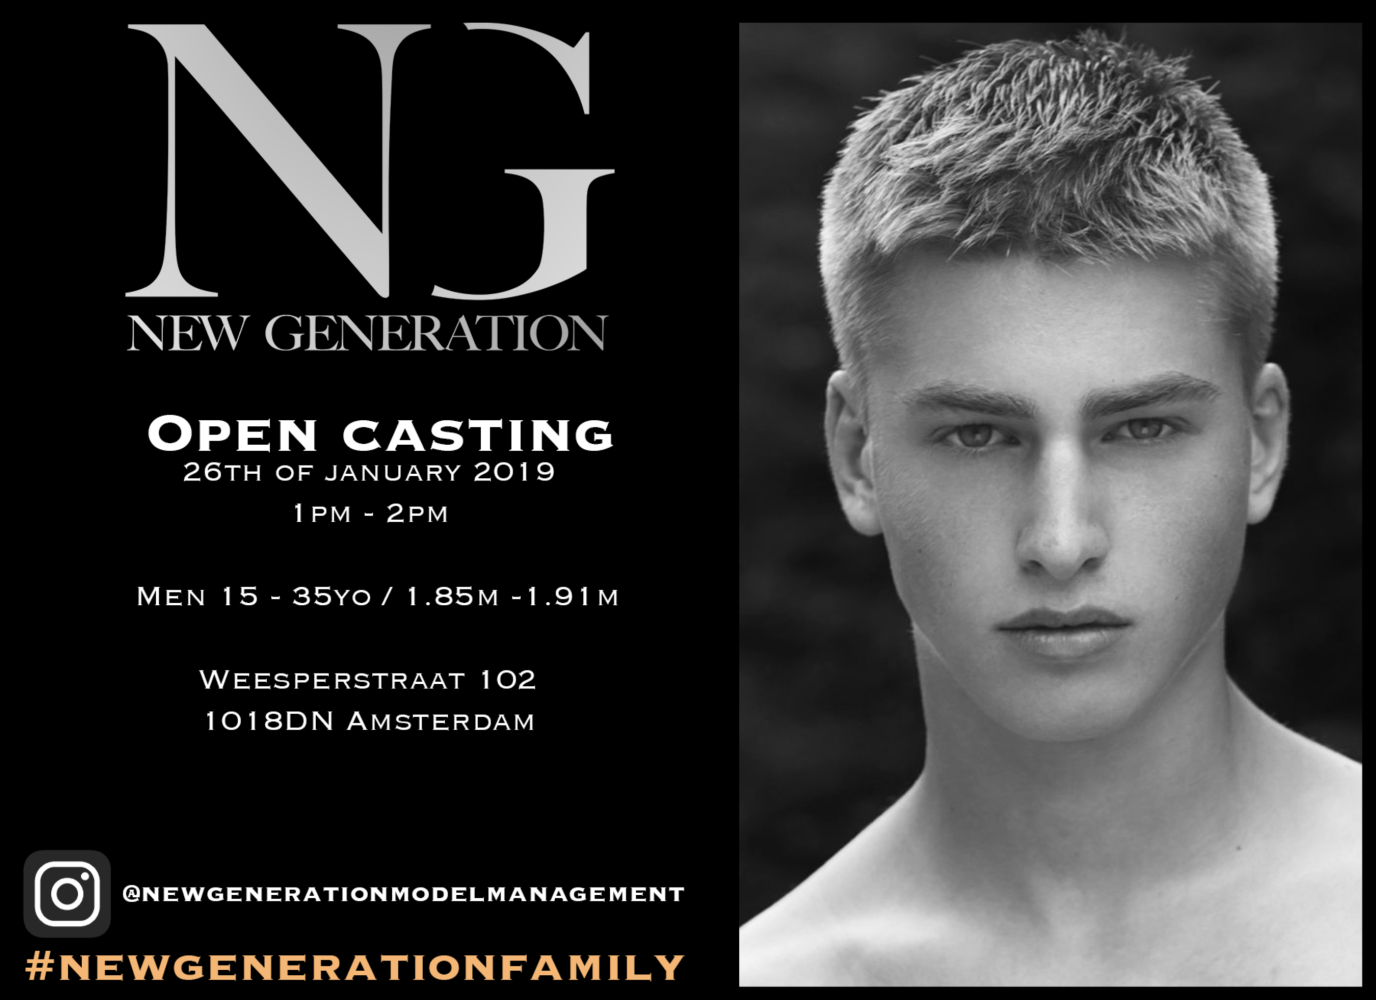 OPEN CASTING - 26th of January 2019!